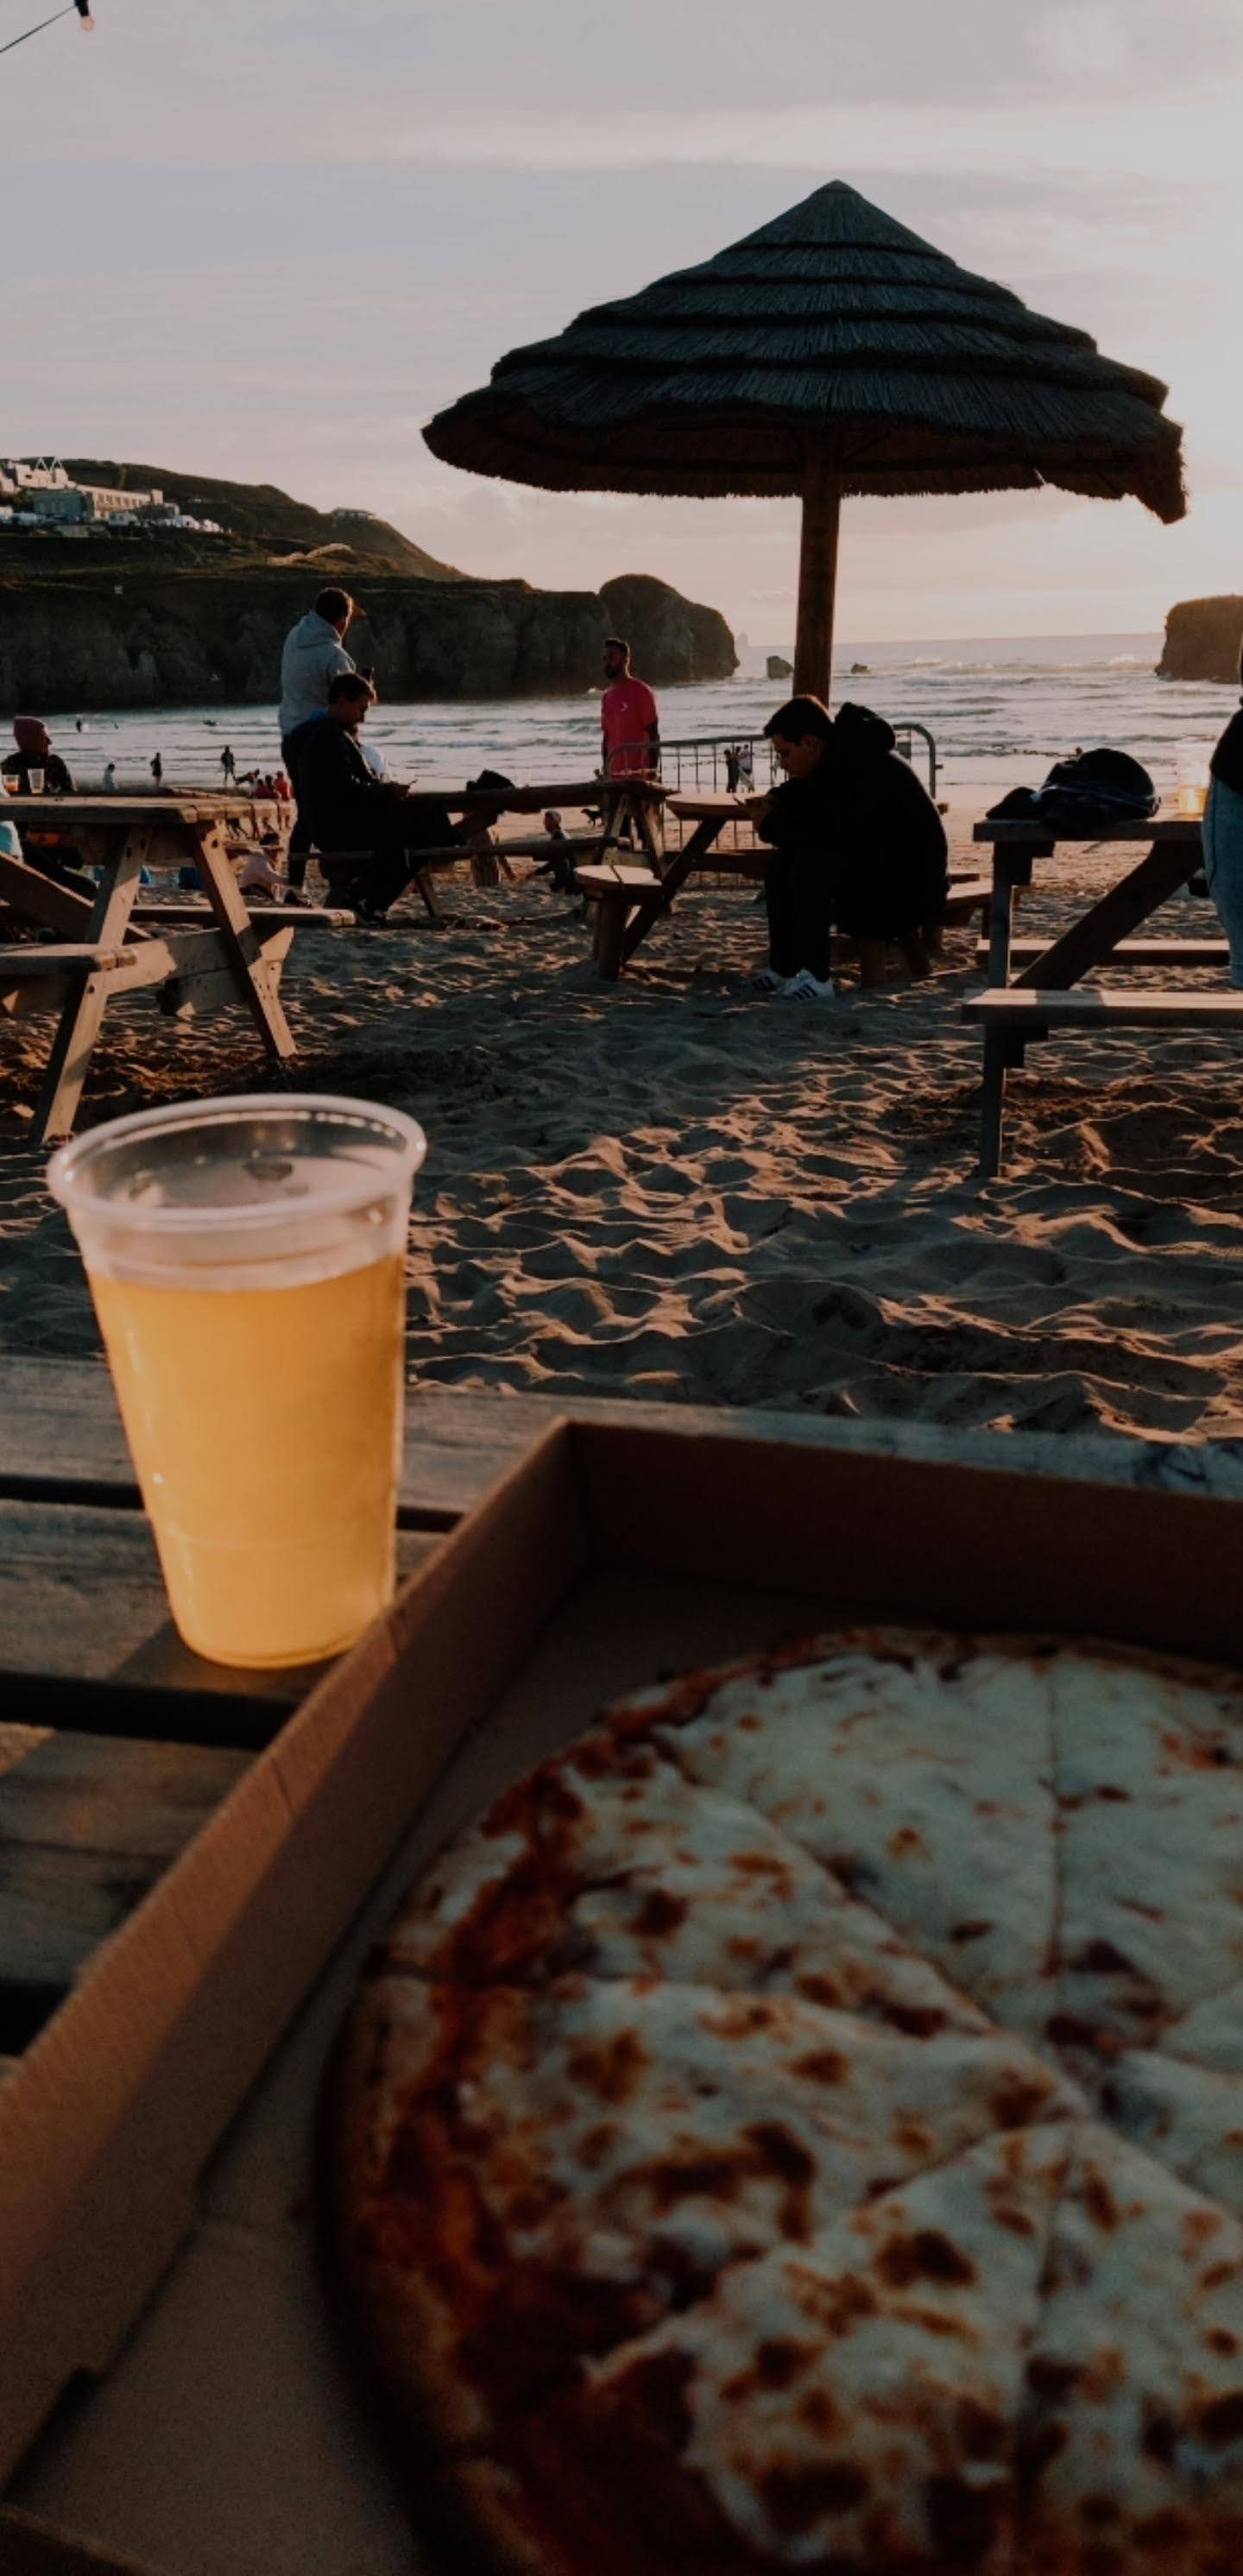 Pizza and beer on the beach